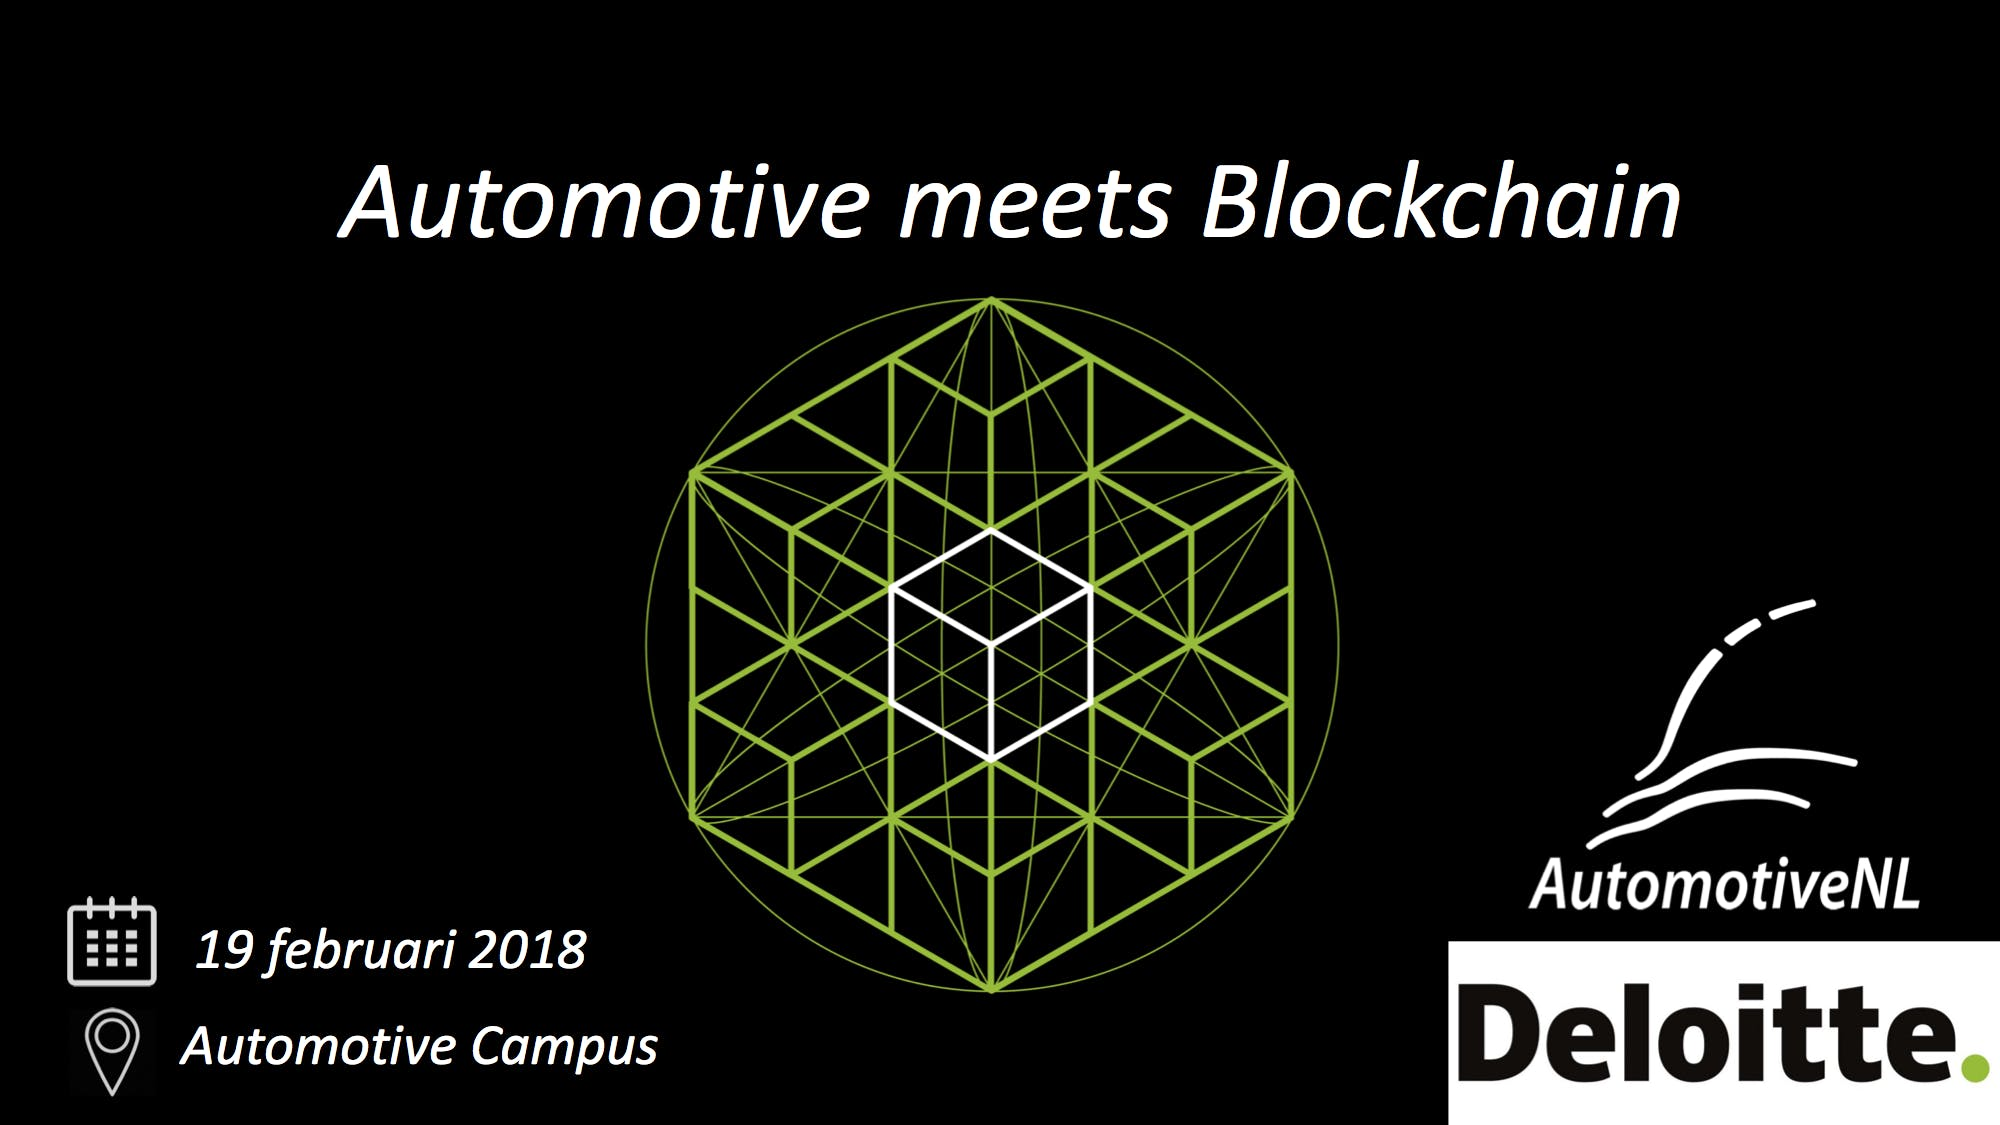 Automotive meets Blockchain, Accelerating dis